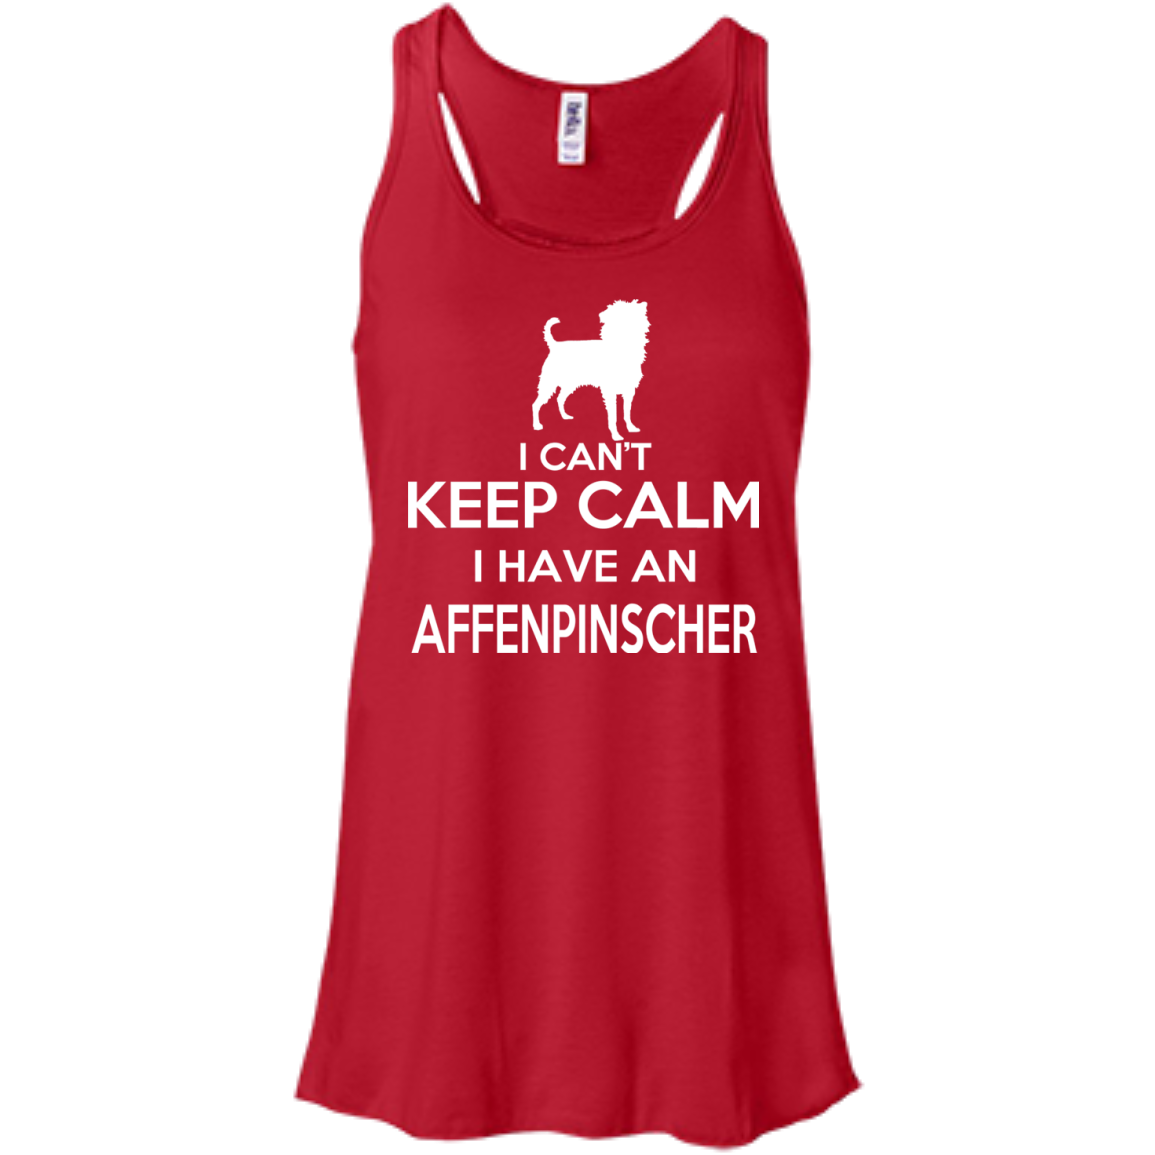 I Cant Keep Calm I Have An Affenpinscher Flowy Racerback Tanks